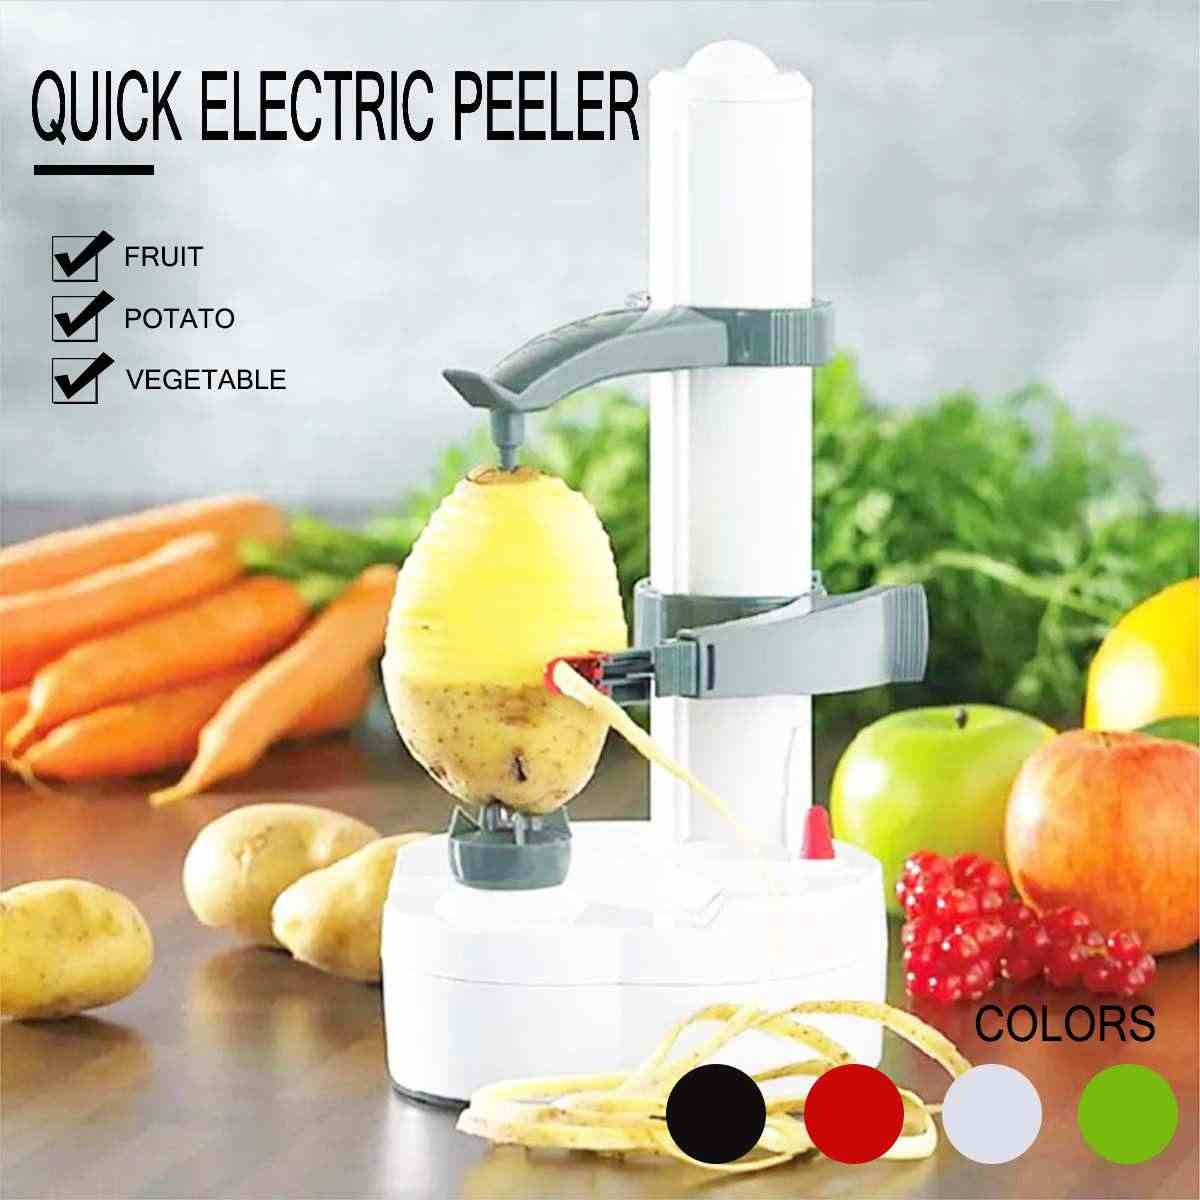 Electric Peeler for Vegetable Fruit Peeler Kitchen Tool with 3 Blades Automatic Stainless Steel Potato Peeling Machine